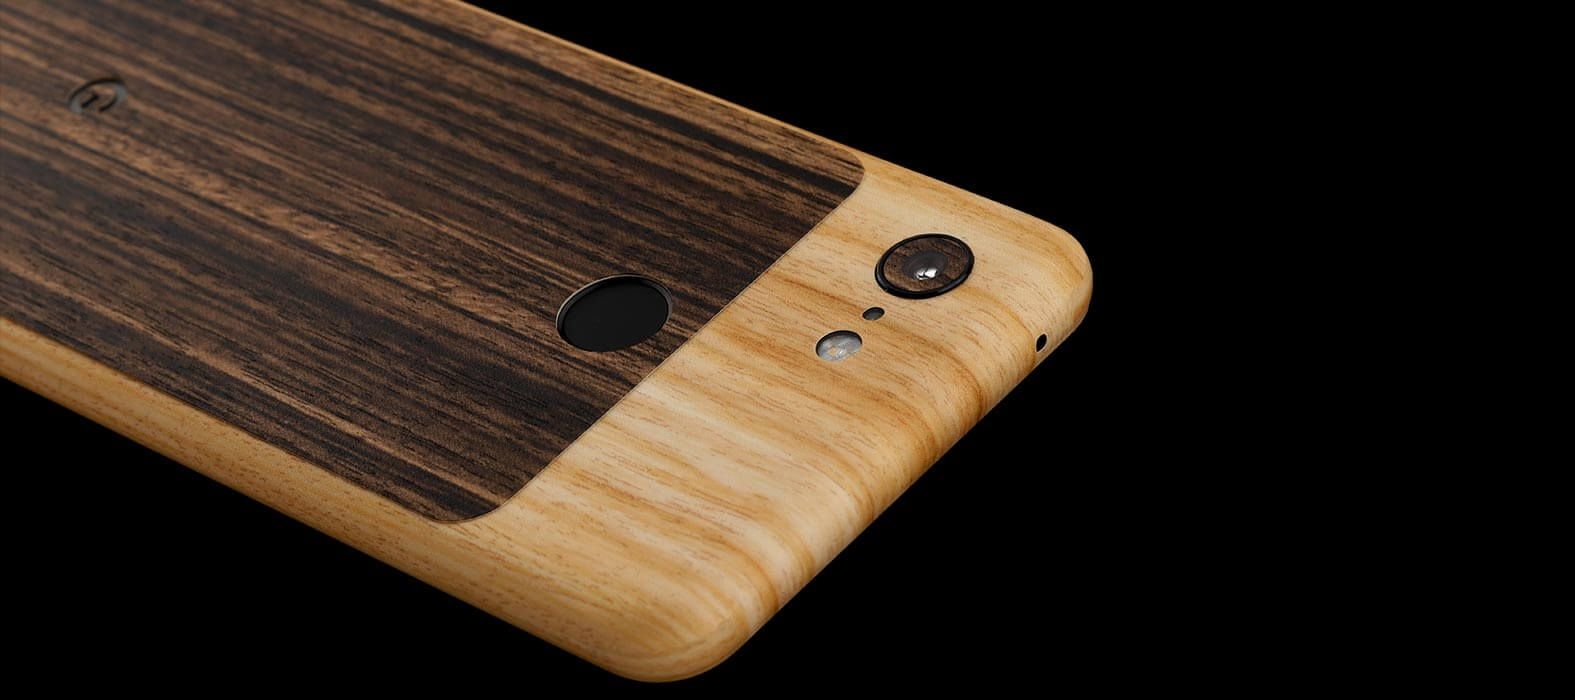 Pixel-3-XL_Bamboo-With-Zebra_Skins